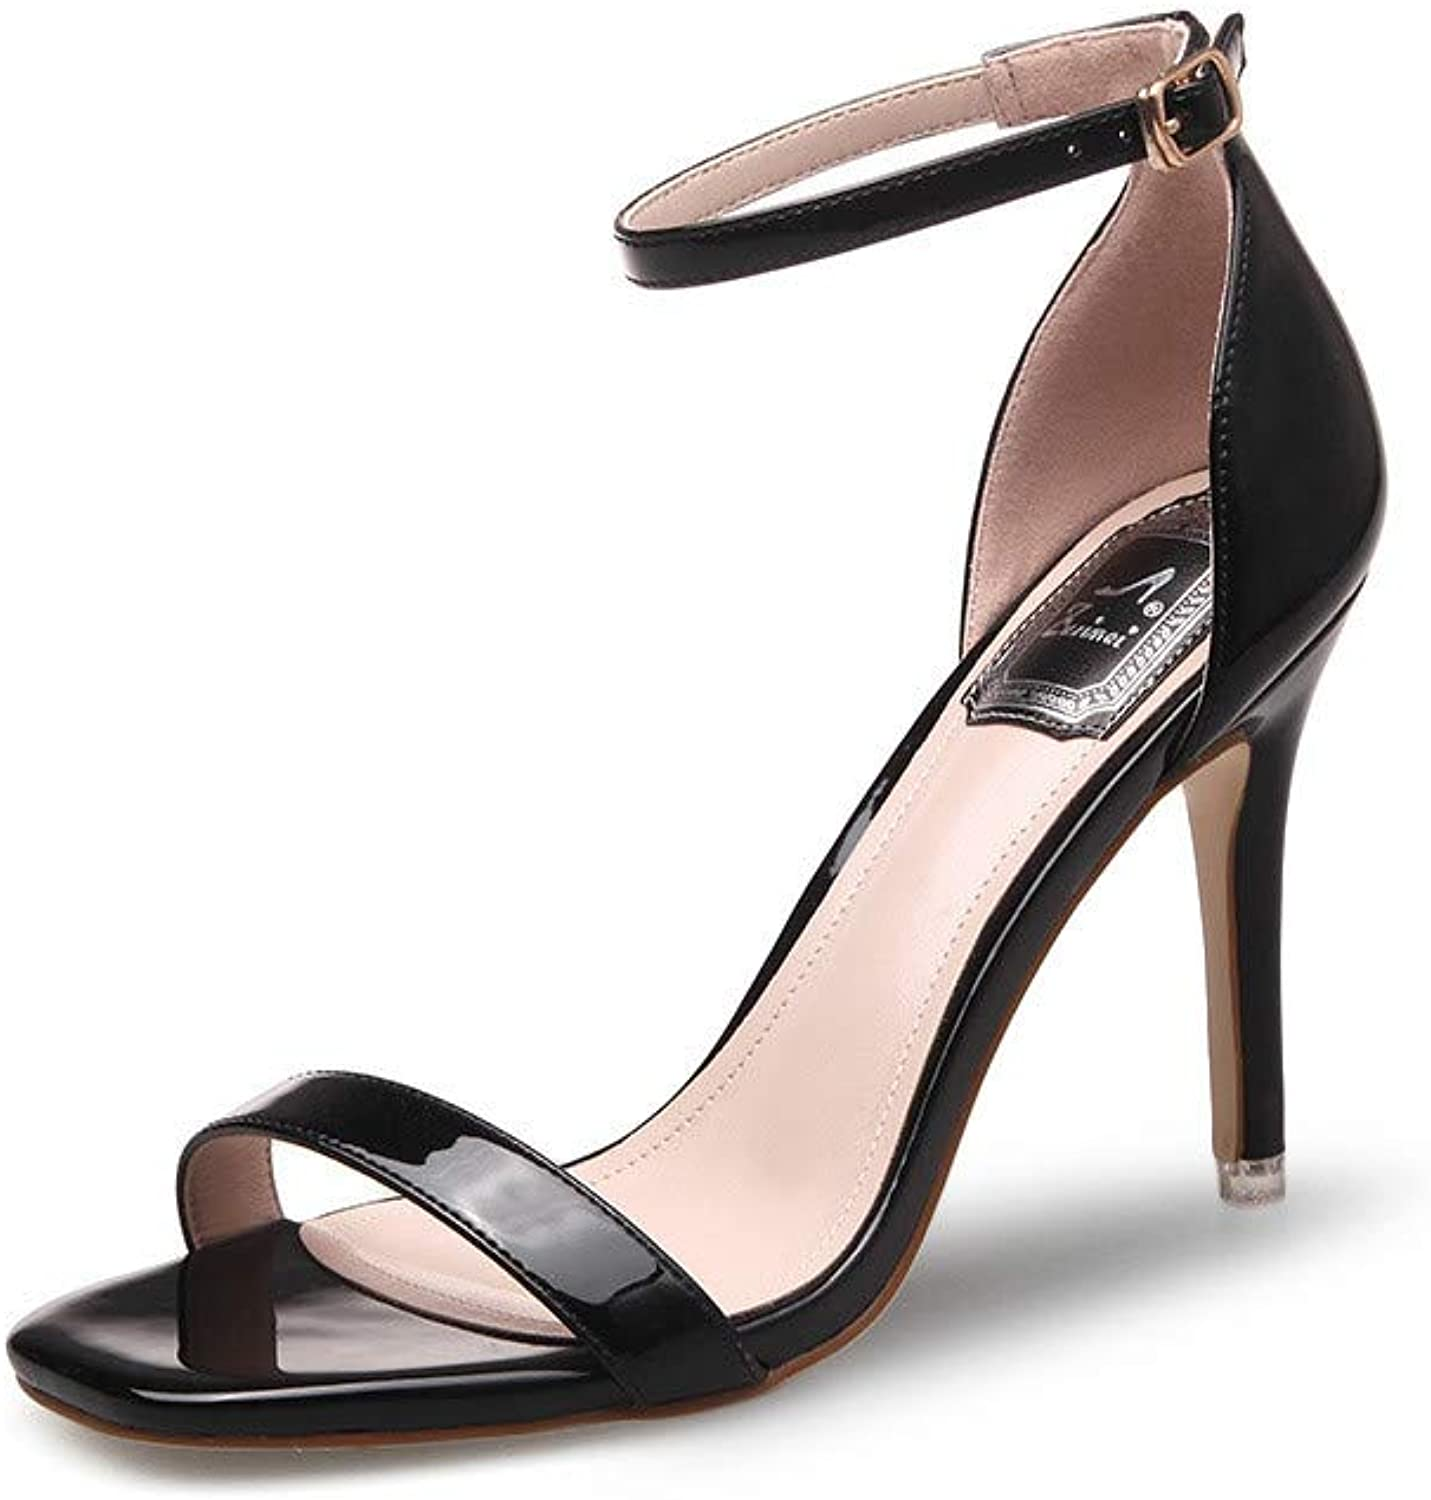 Lacquer Silver High Heel Summer Fine-Heeled Sandals Women Button Toes Naked Women's shoes Sexy,Black,34